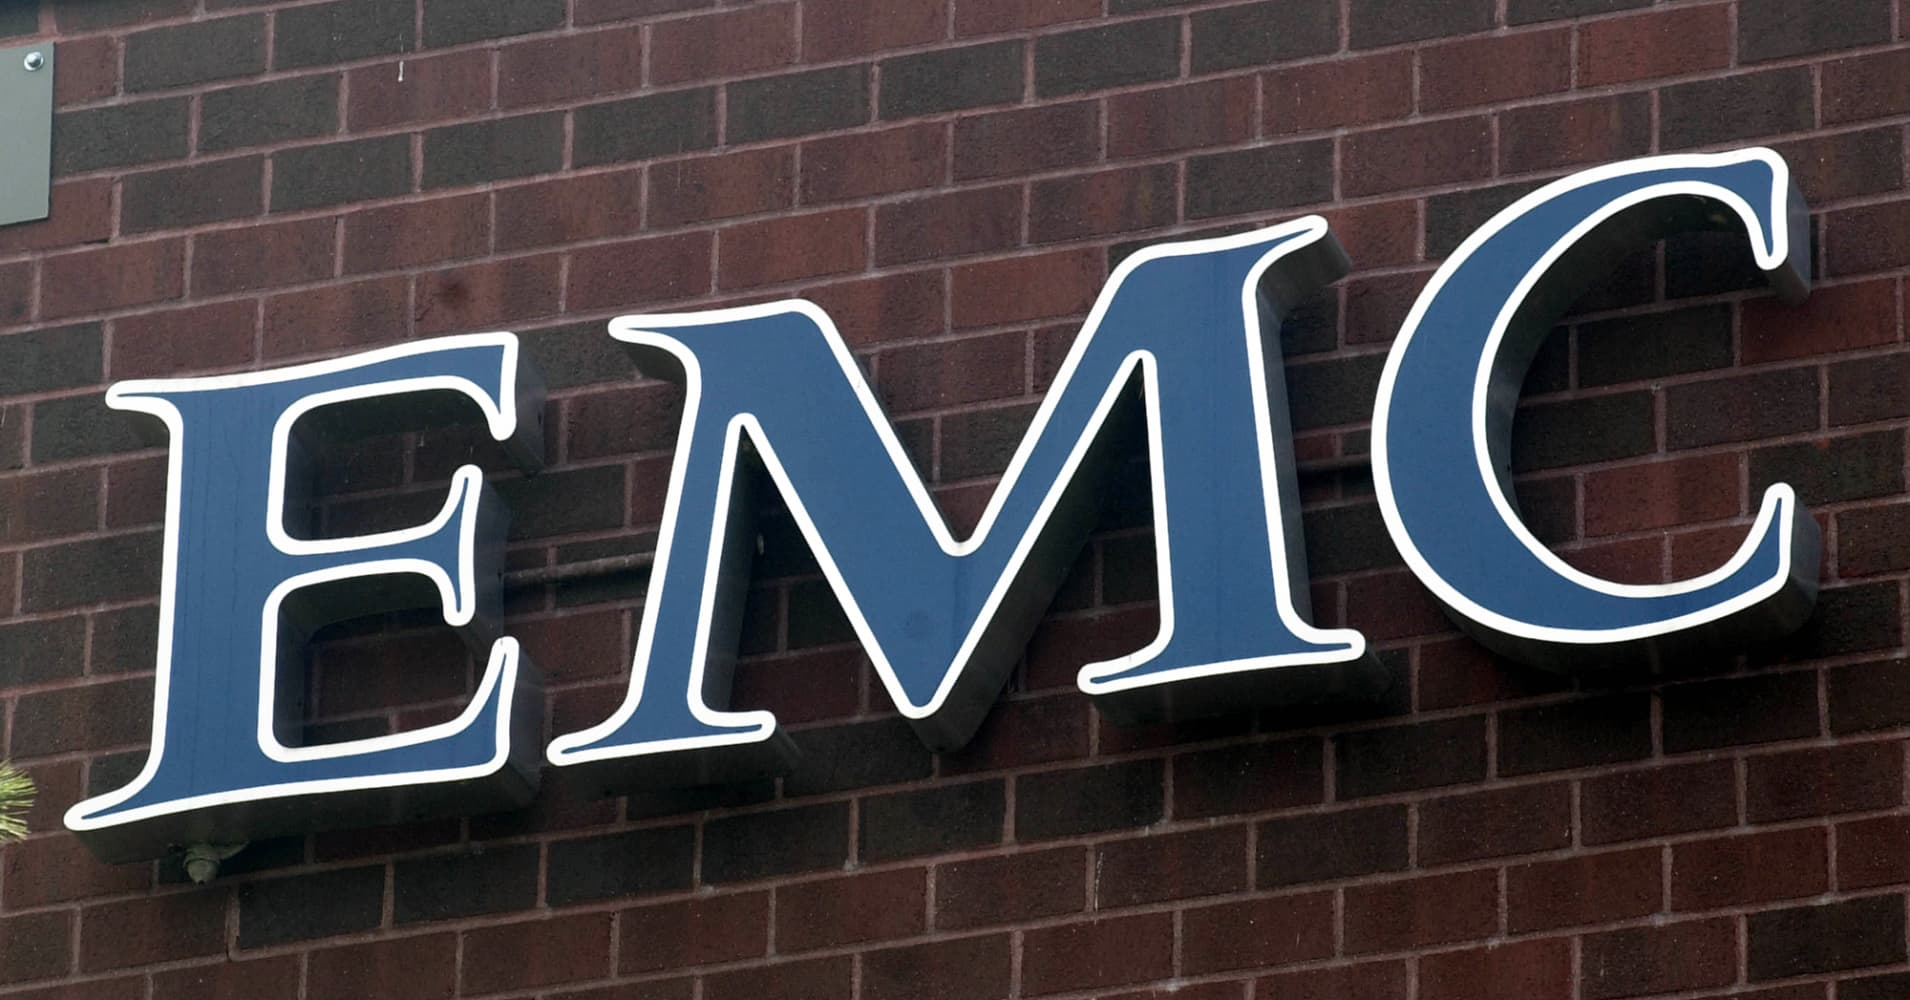 Emc Wants Go Shop Provision In Dell Deal Sources